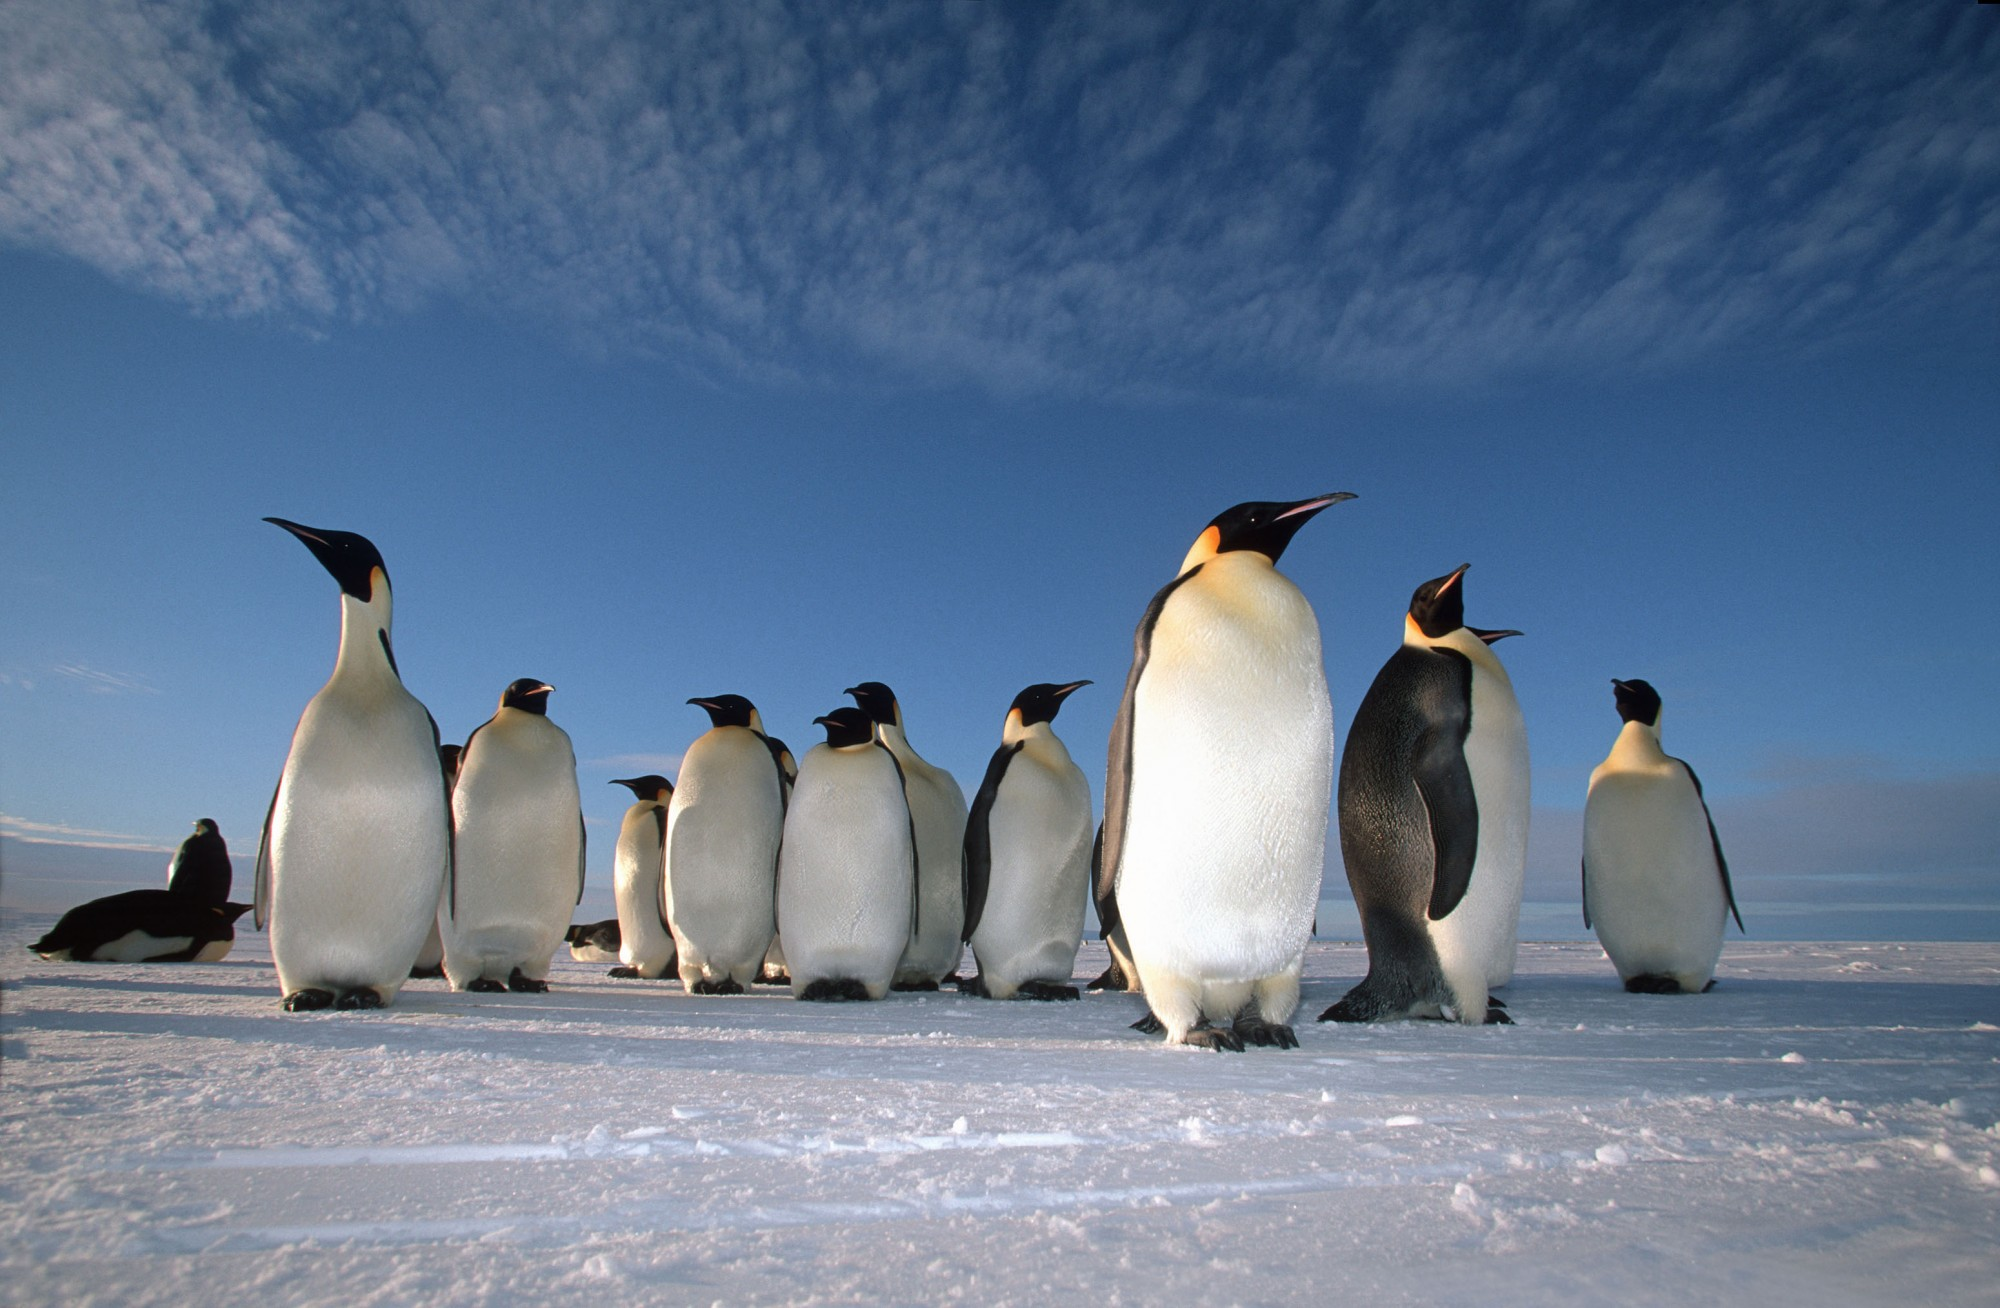 Examples of natural selection among the emperor penguins